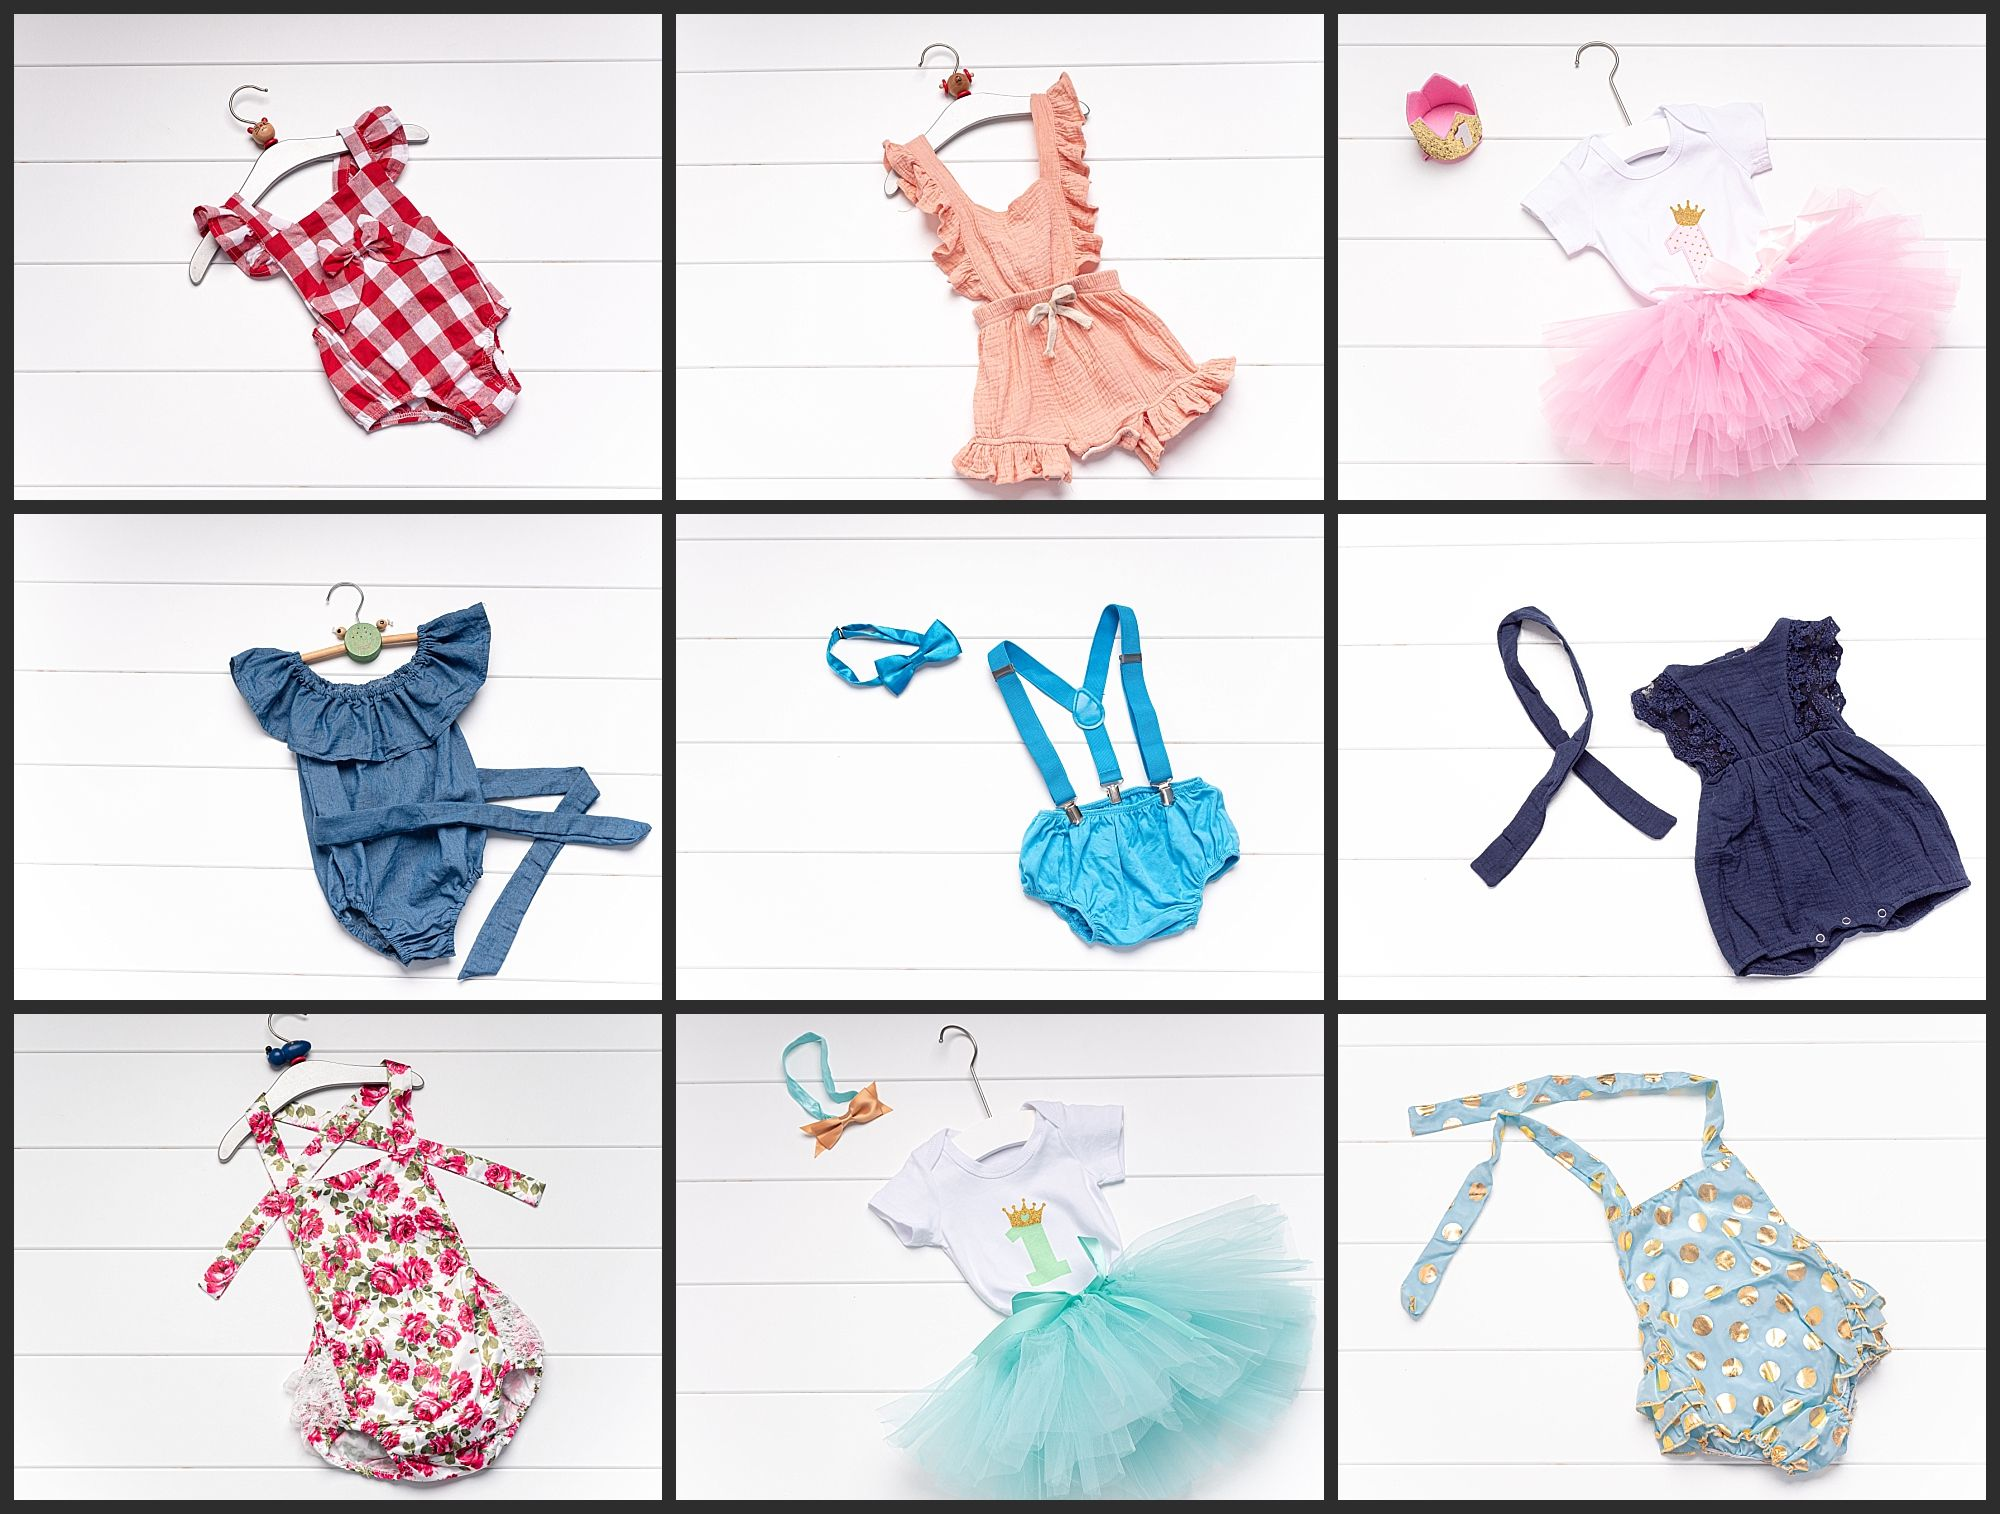 Outfits for a baby Cakesmash in Vienna. Baby smash the cake Fotograf